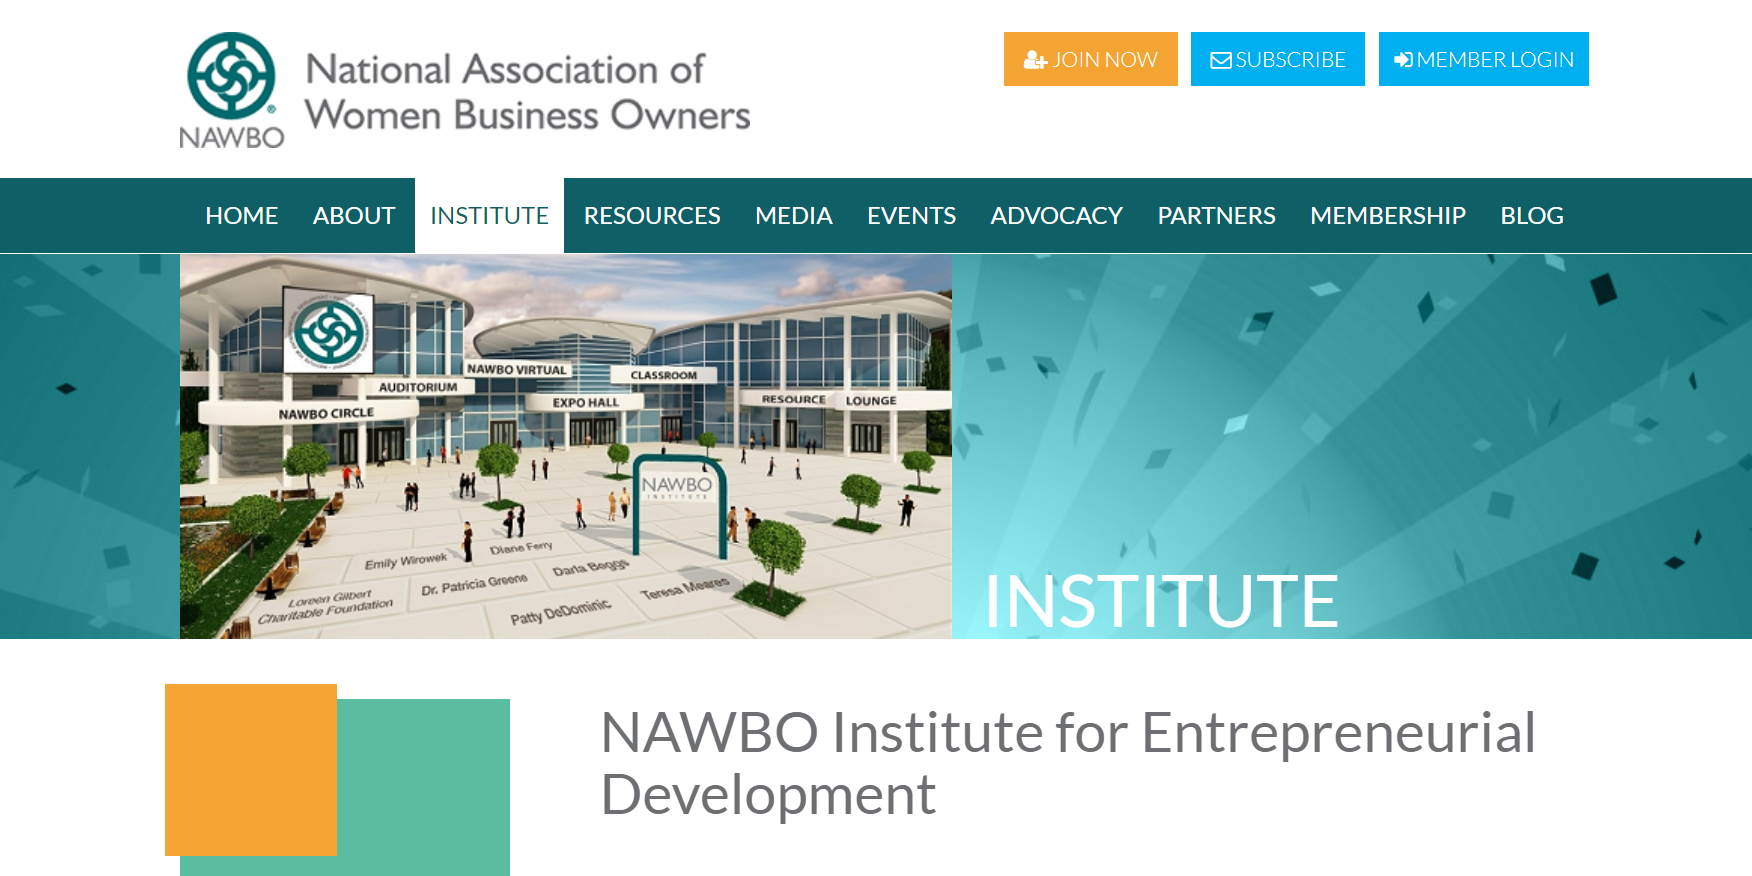 NAWBO Virtual Institute